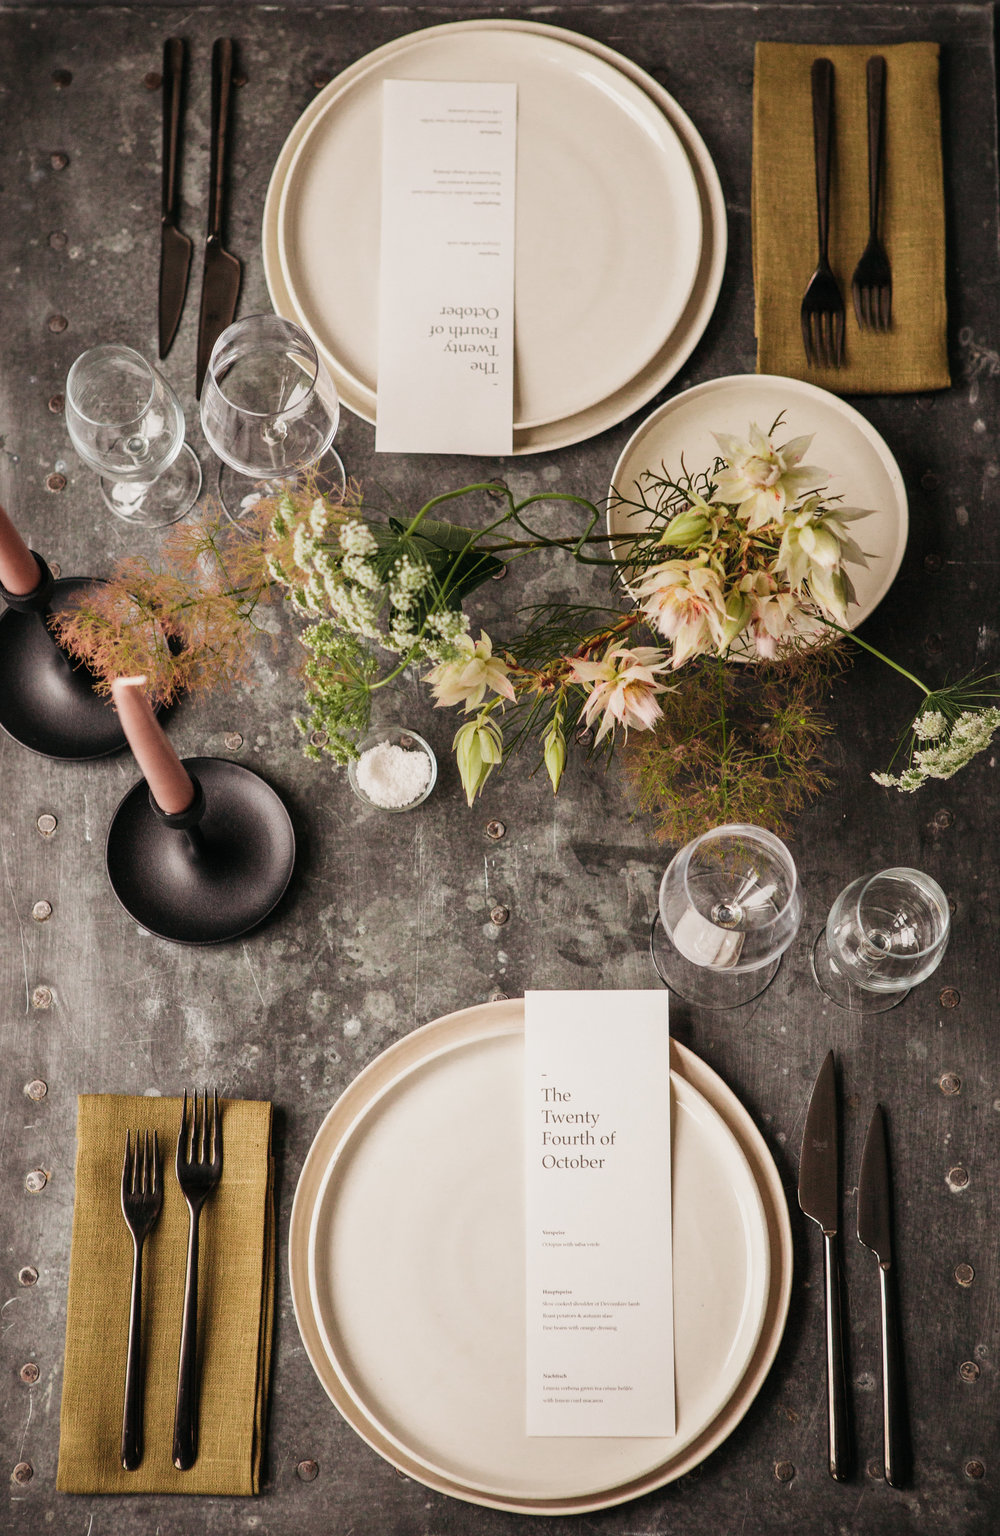 10 wedding tablescapes to inspire your Thanksgiving